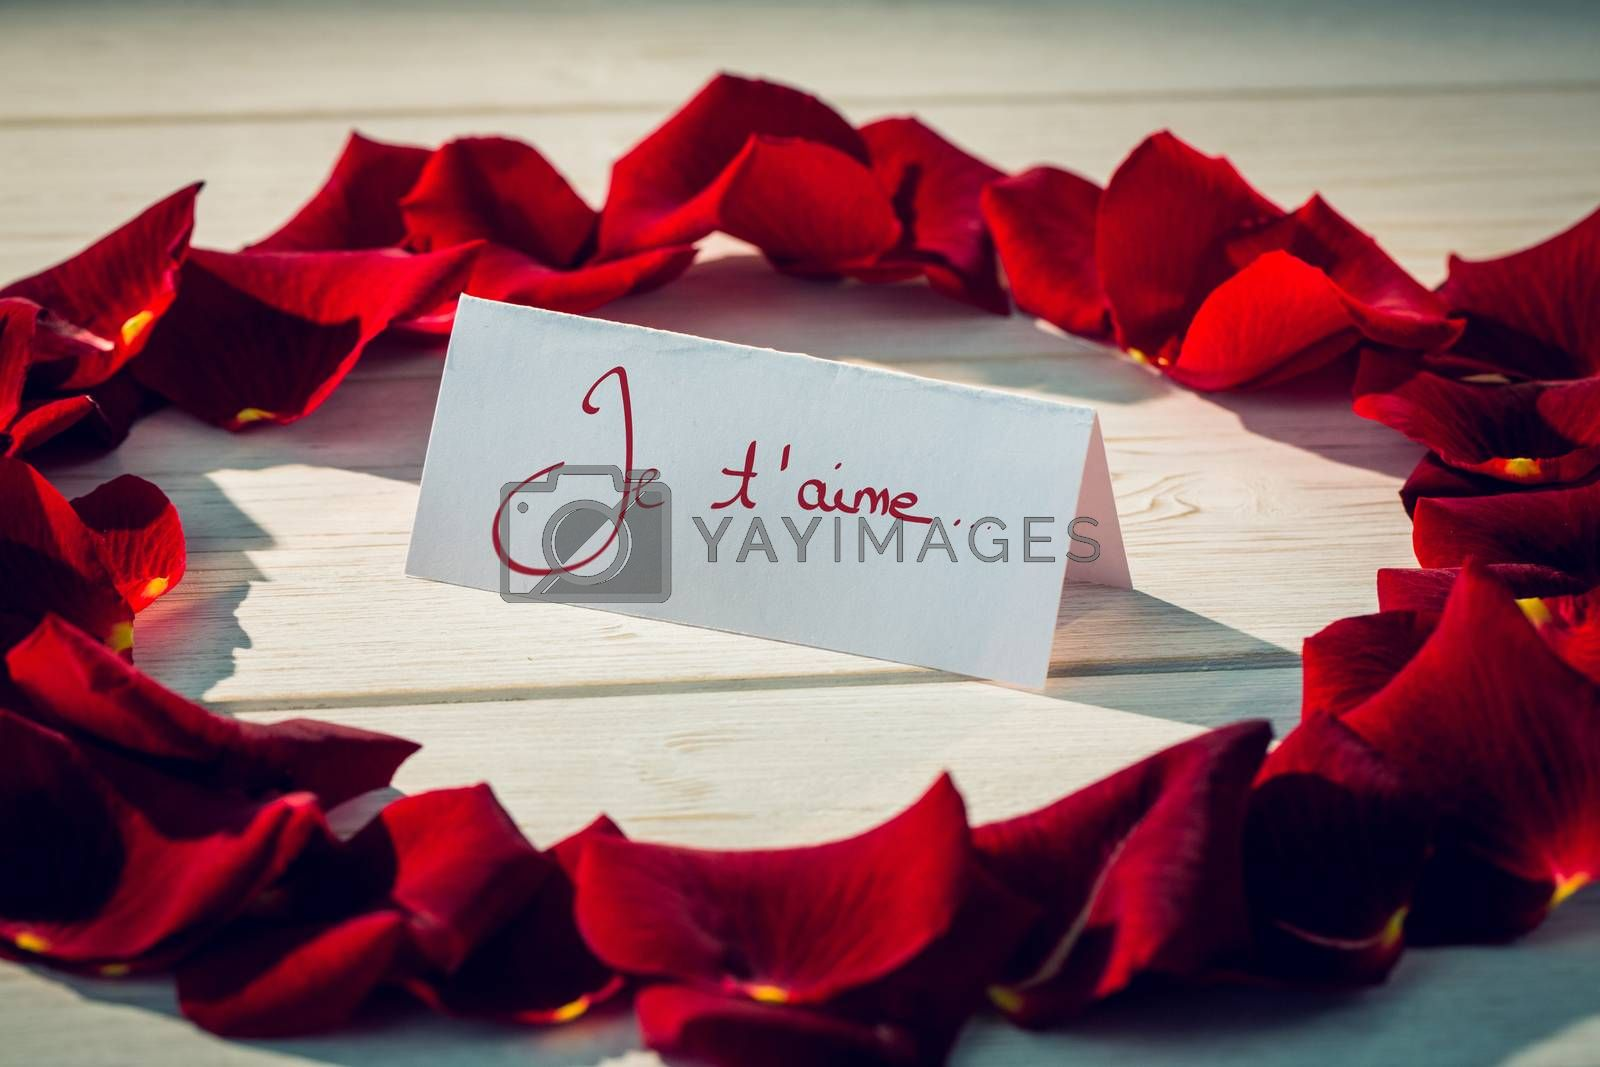 Valentines love hearts against card surrounded by petals